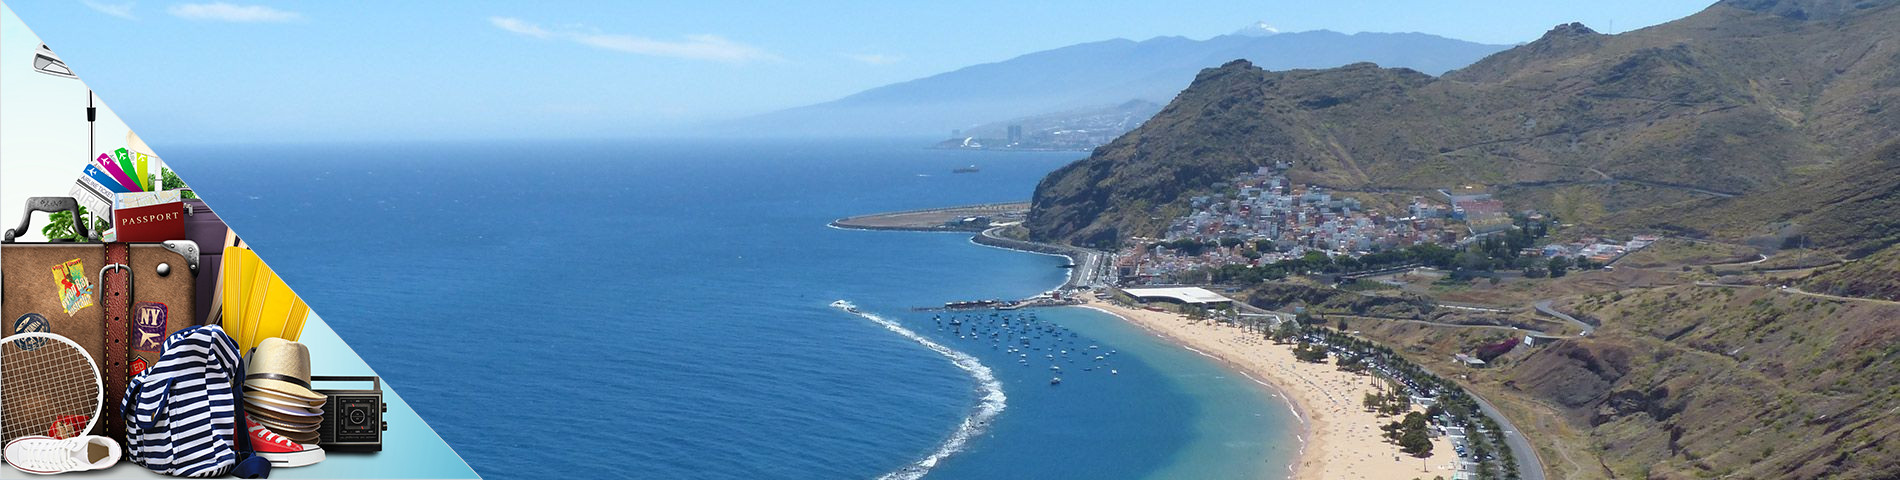 Tenerife - Spanish for Tourism